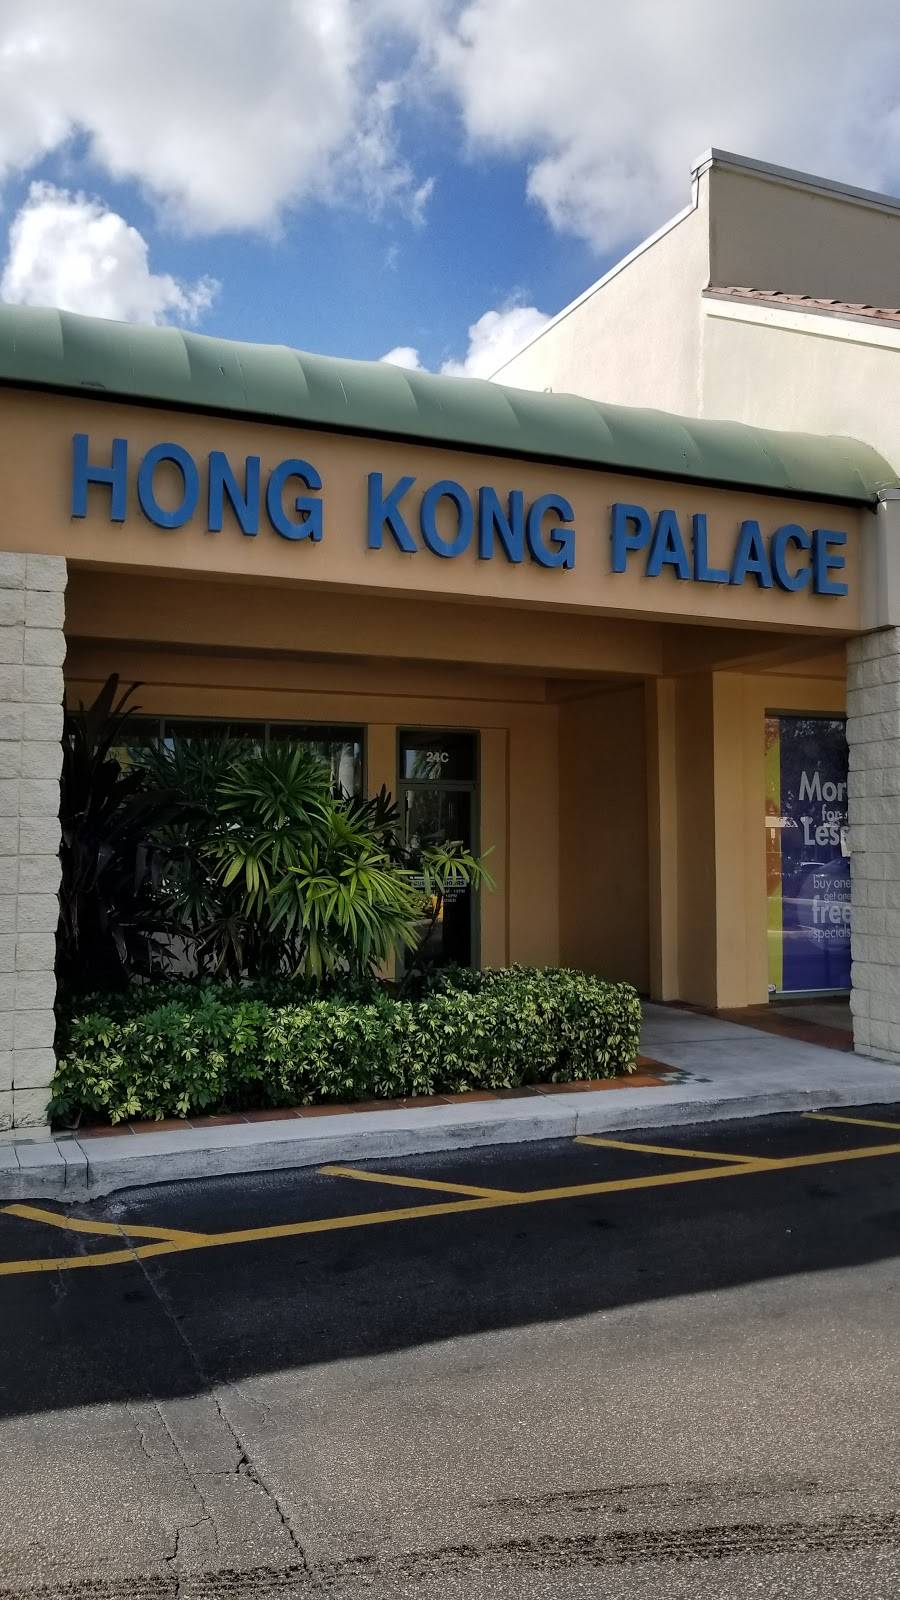 Hong Kong Palace | meal delivery | 22191 Powerline Rd #24c, Boca Raton, FL 33433, USA | 5613385887 OR +1 561-338-5887